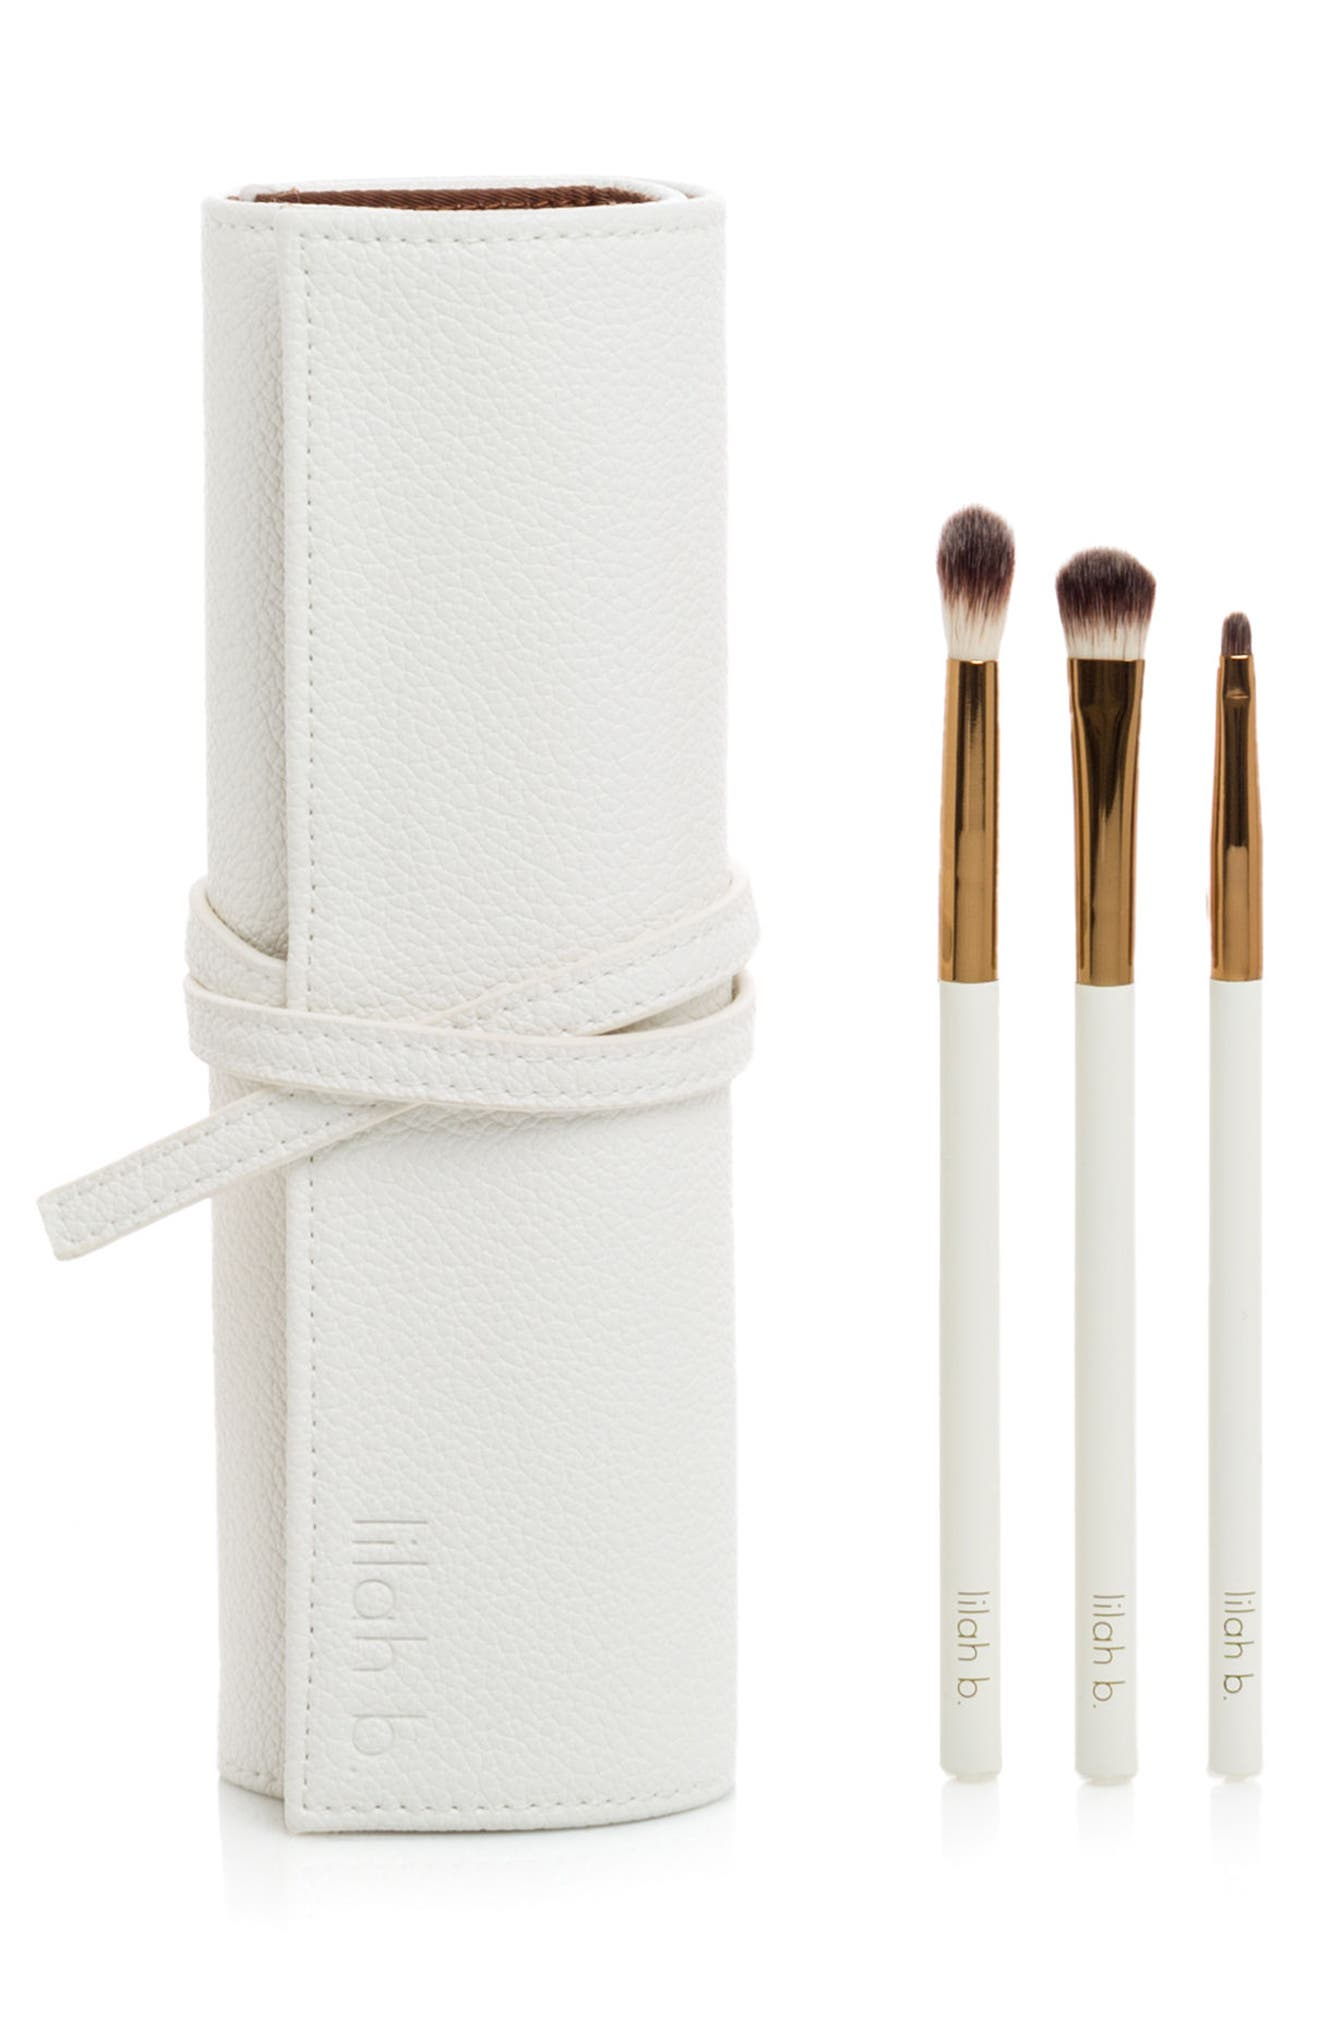 For Your Eyes Only Brush Set,                         Main,                         color, No Color